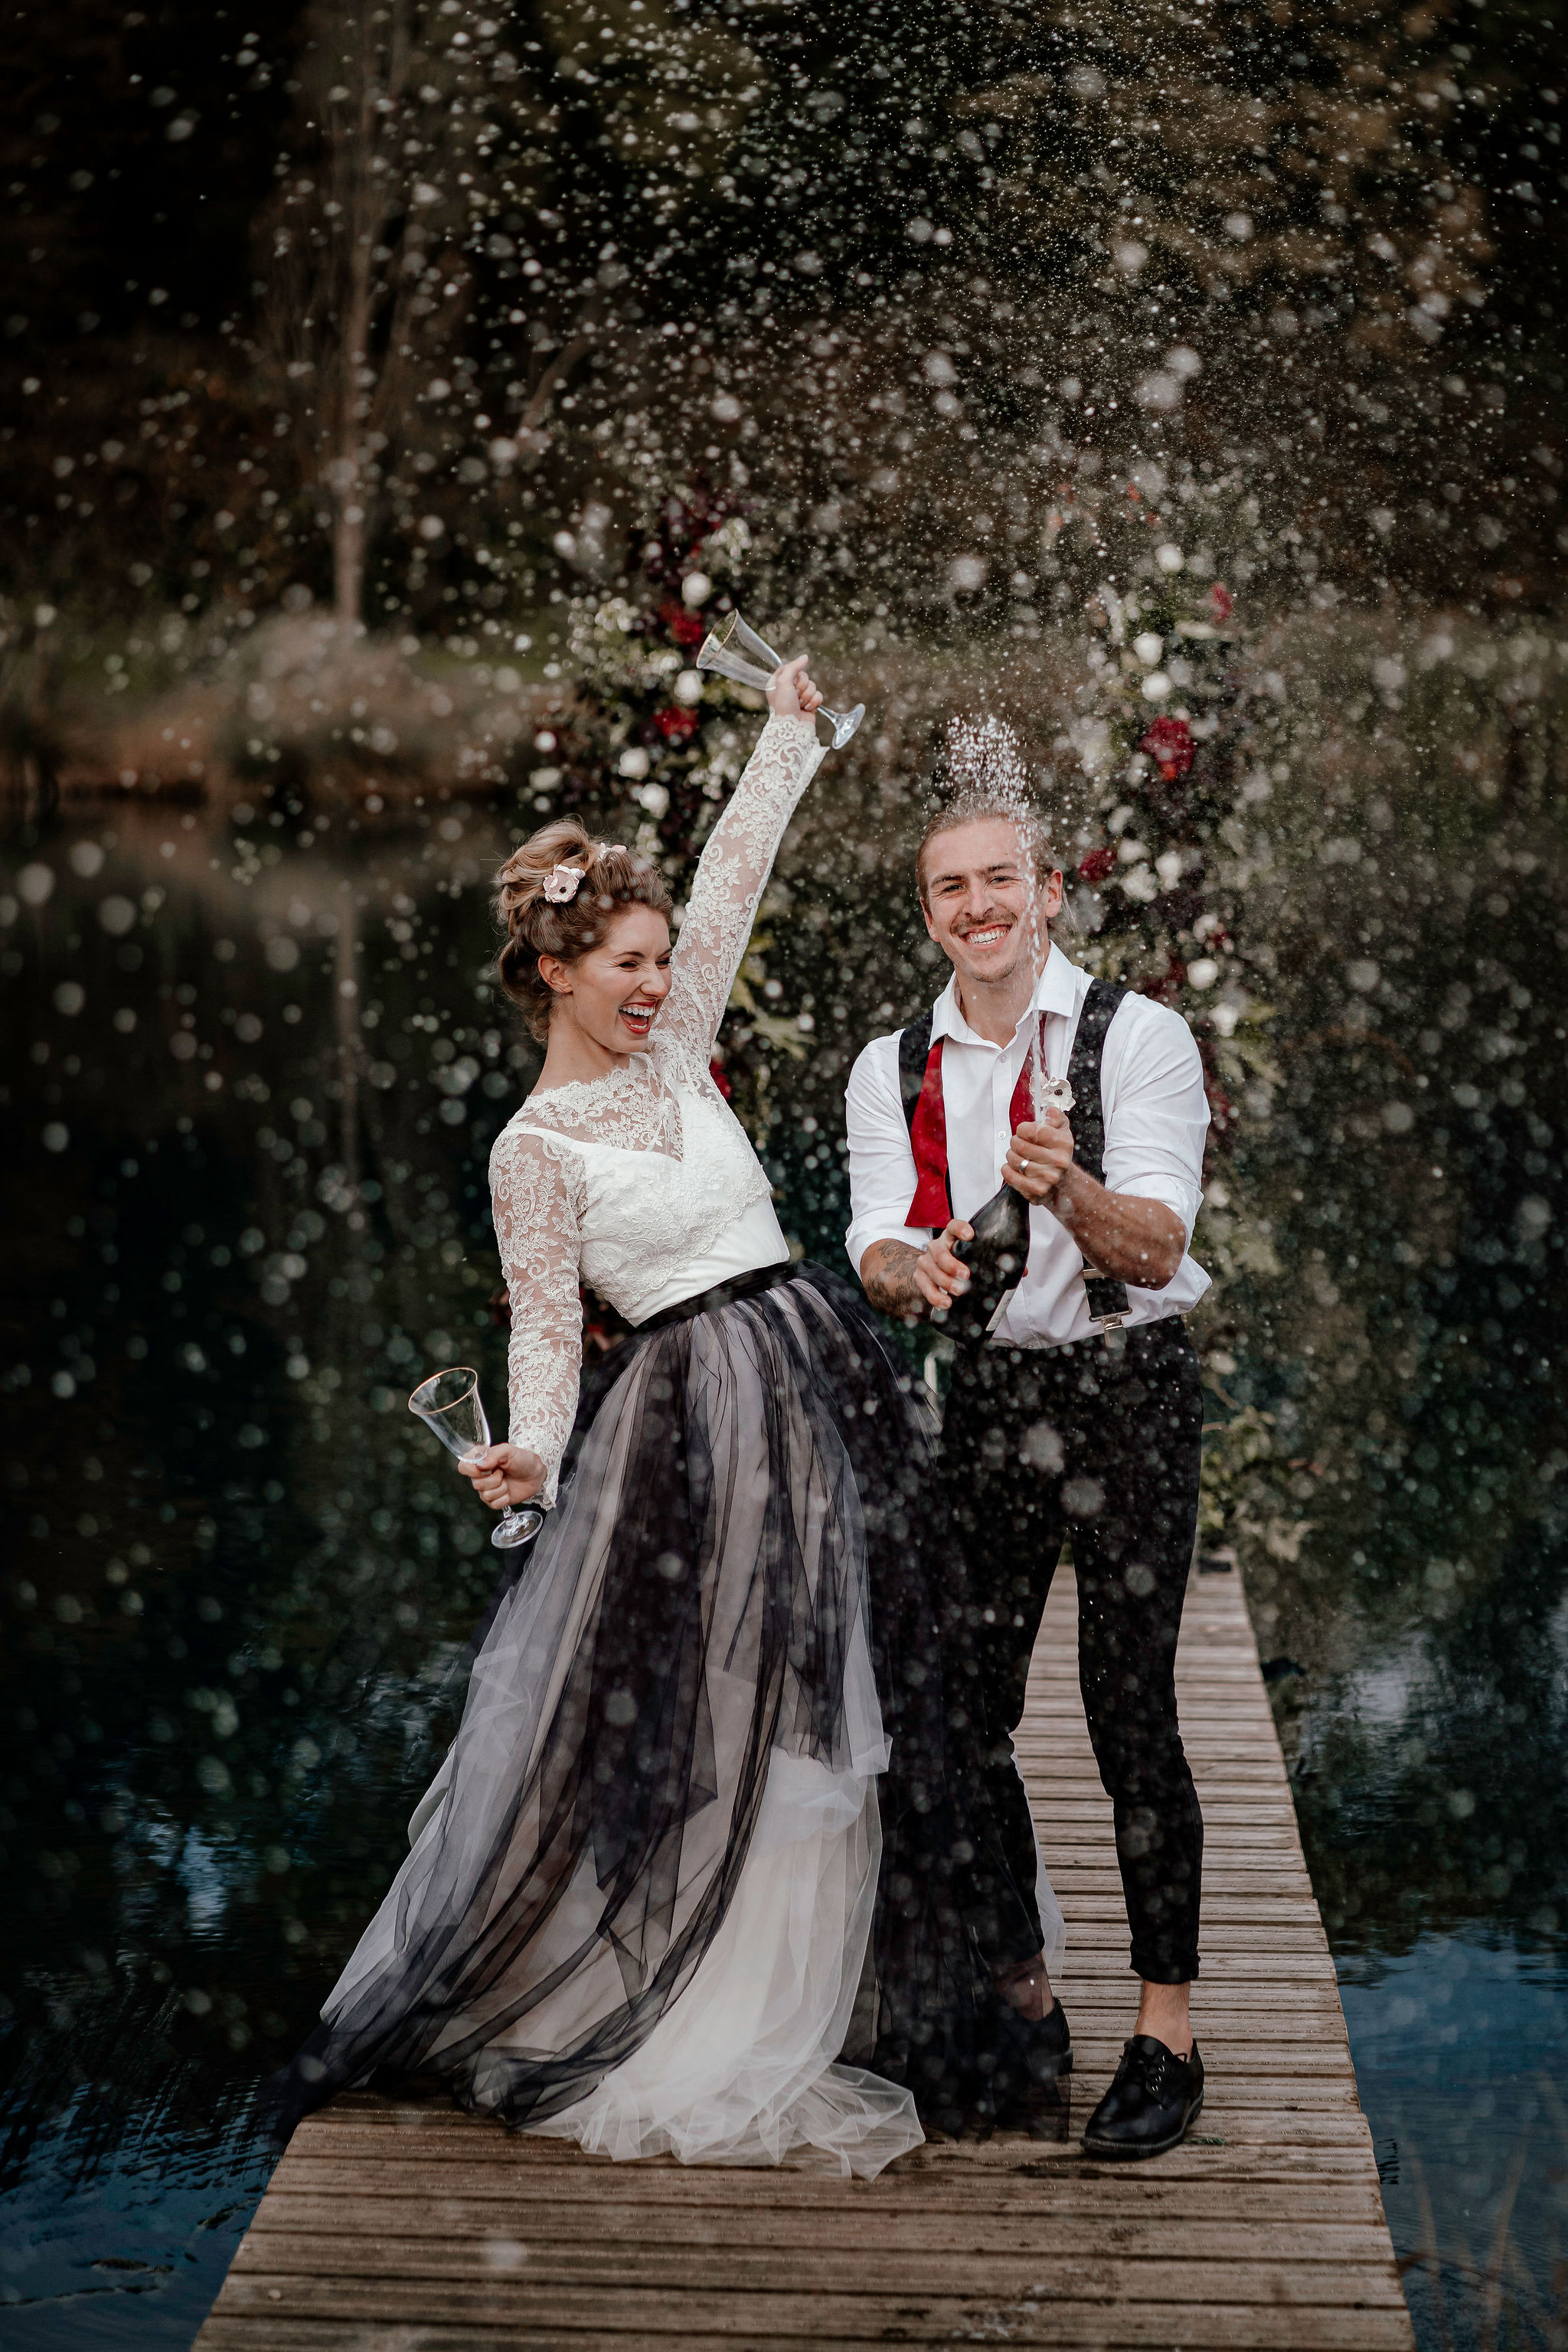 Ryley and Flynn - alternative wedding dress - black and white wedding dress